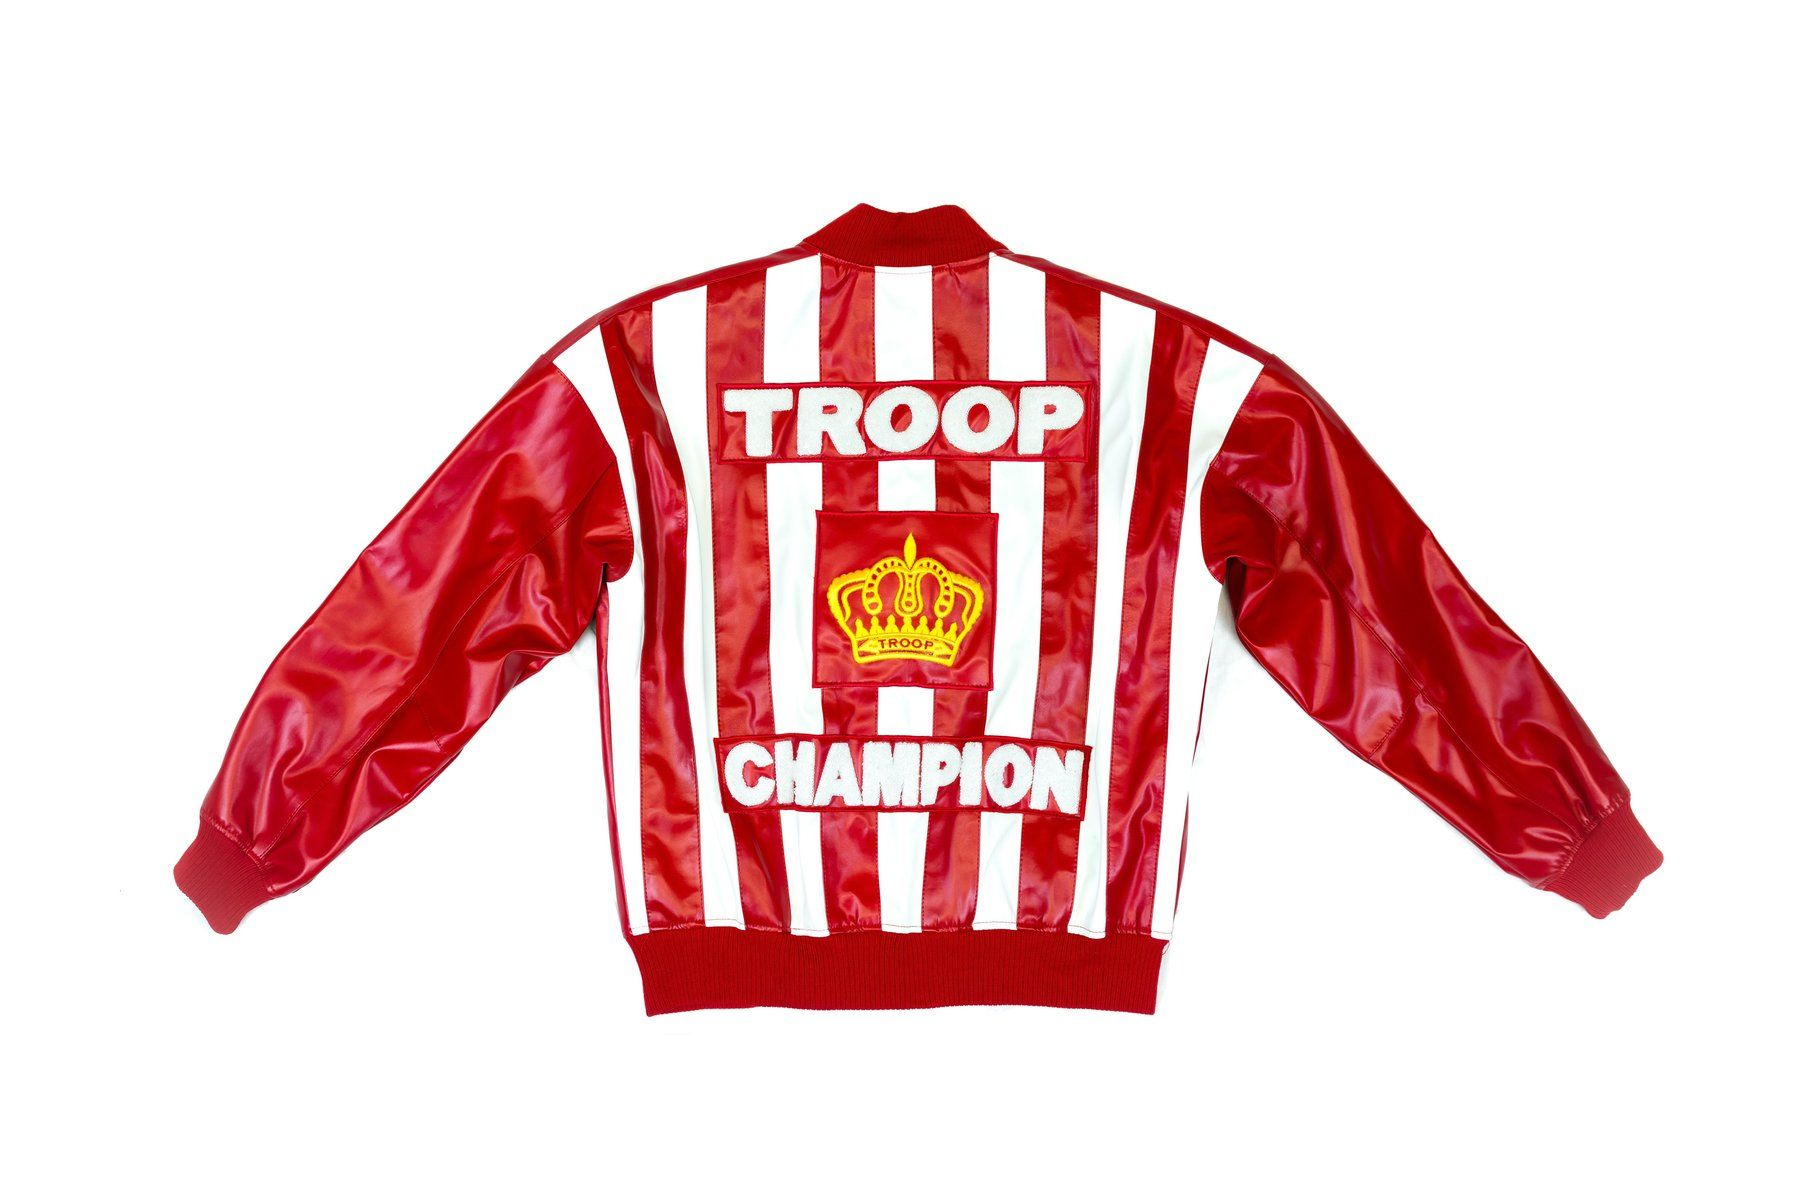 Troop Champion Leather Jacket Red White Thedrop Com Red Jacket Champion Jacket Leather Jacket [ 1201 x 1800 Pixel ]